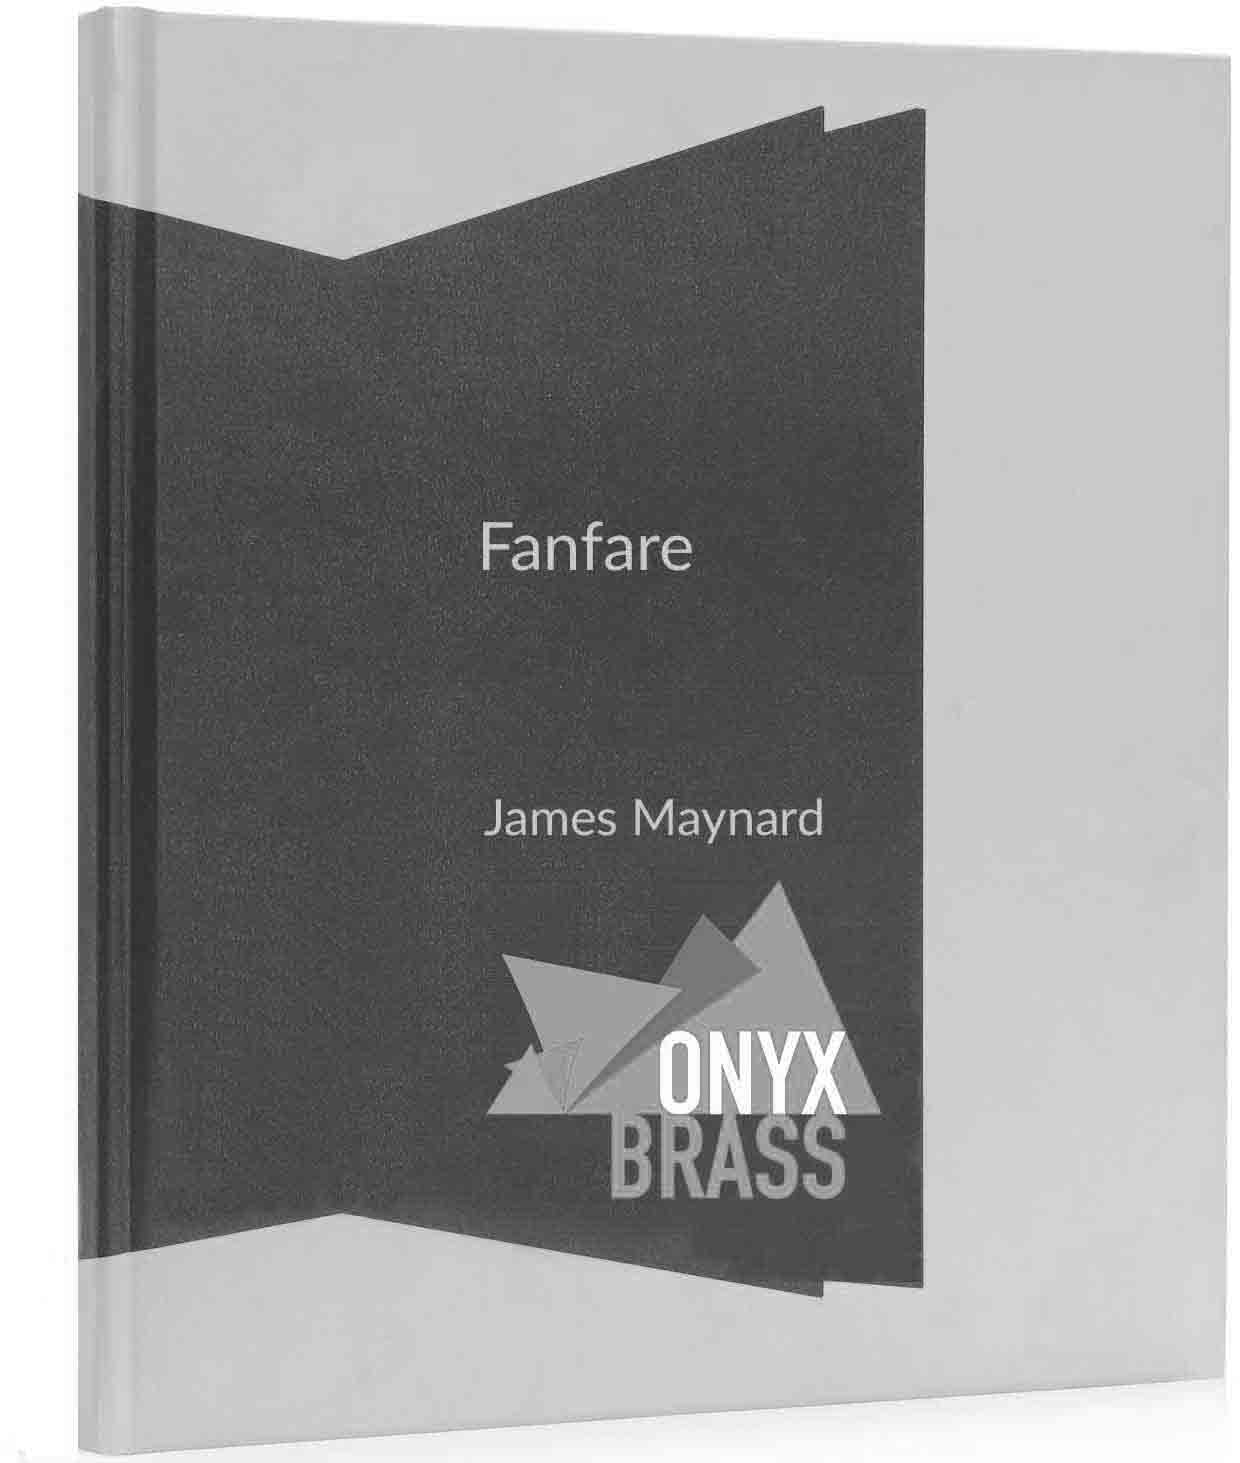 fanfare_James_Maynard